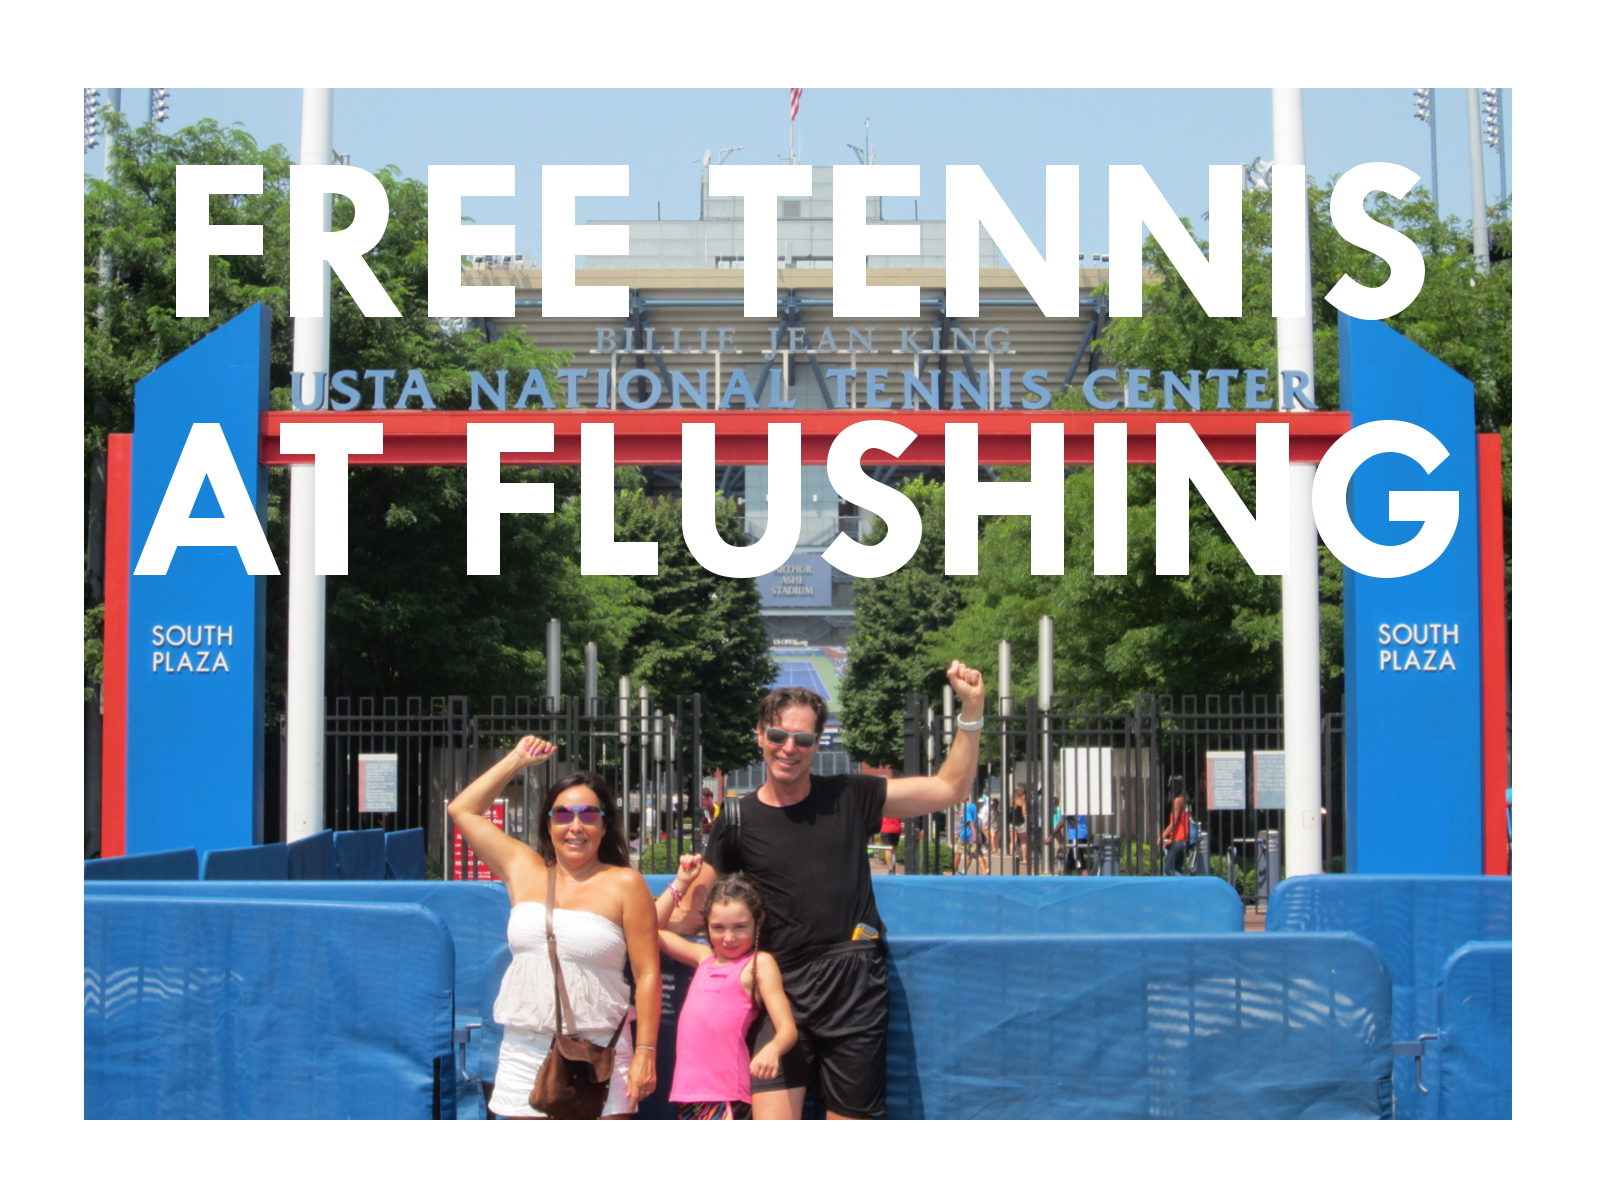 Get your free tennis on!